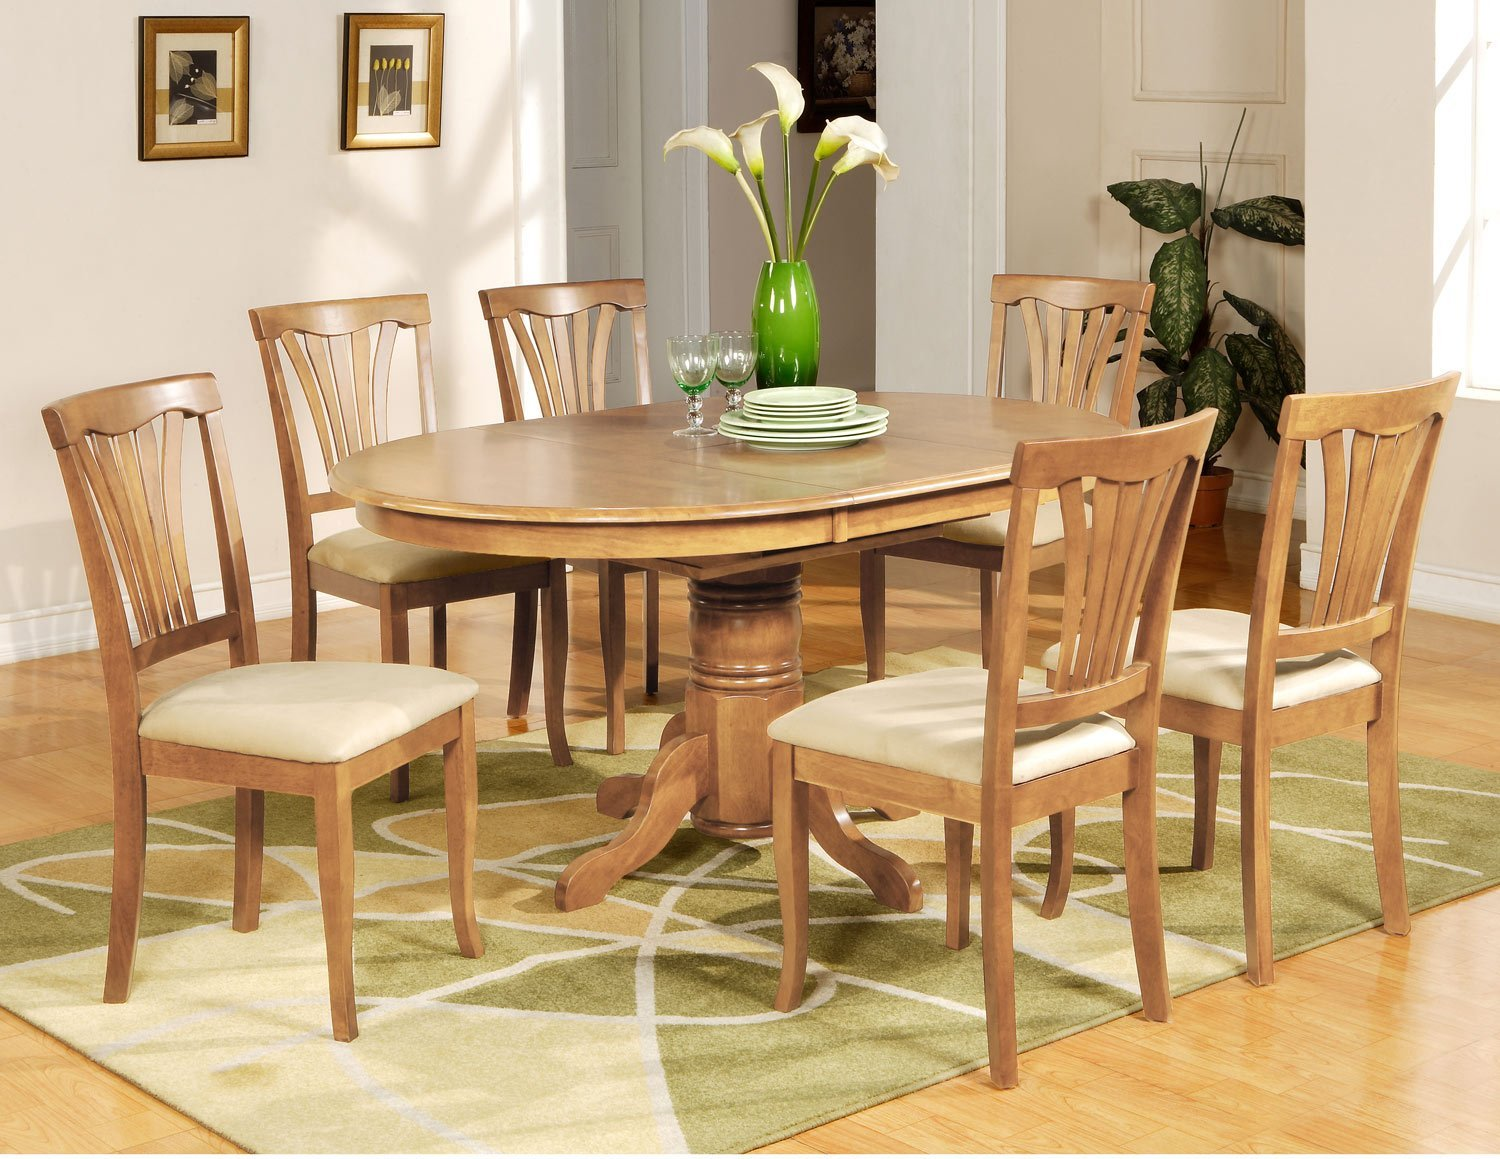 7 PC Avon Oval Dining Table 6 Microfiber Upholstered  : 4f5059a751d65137513b from www.ecrater.com size 1500 x 1159 jpeg 294kB